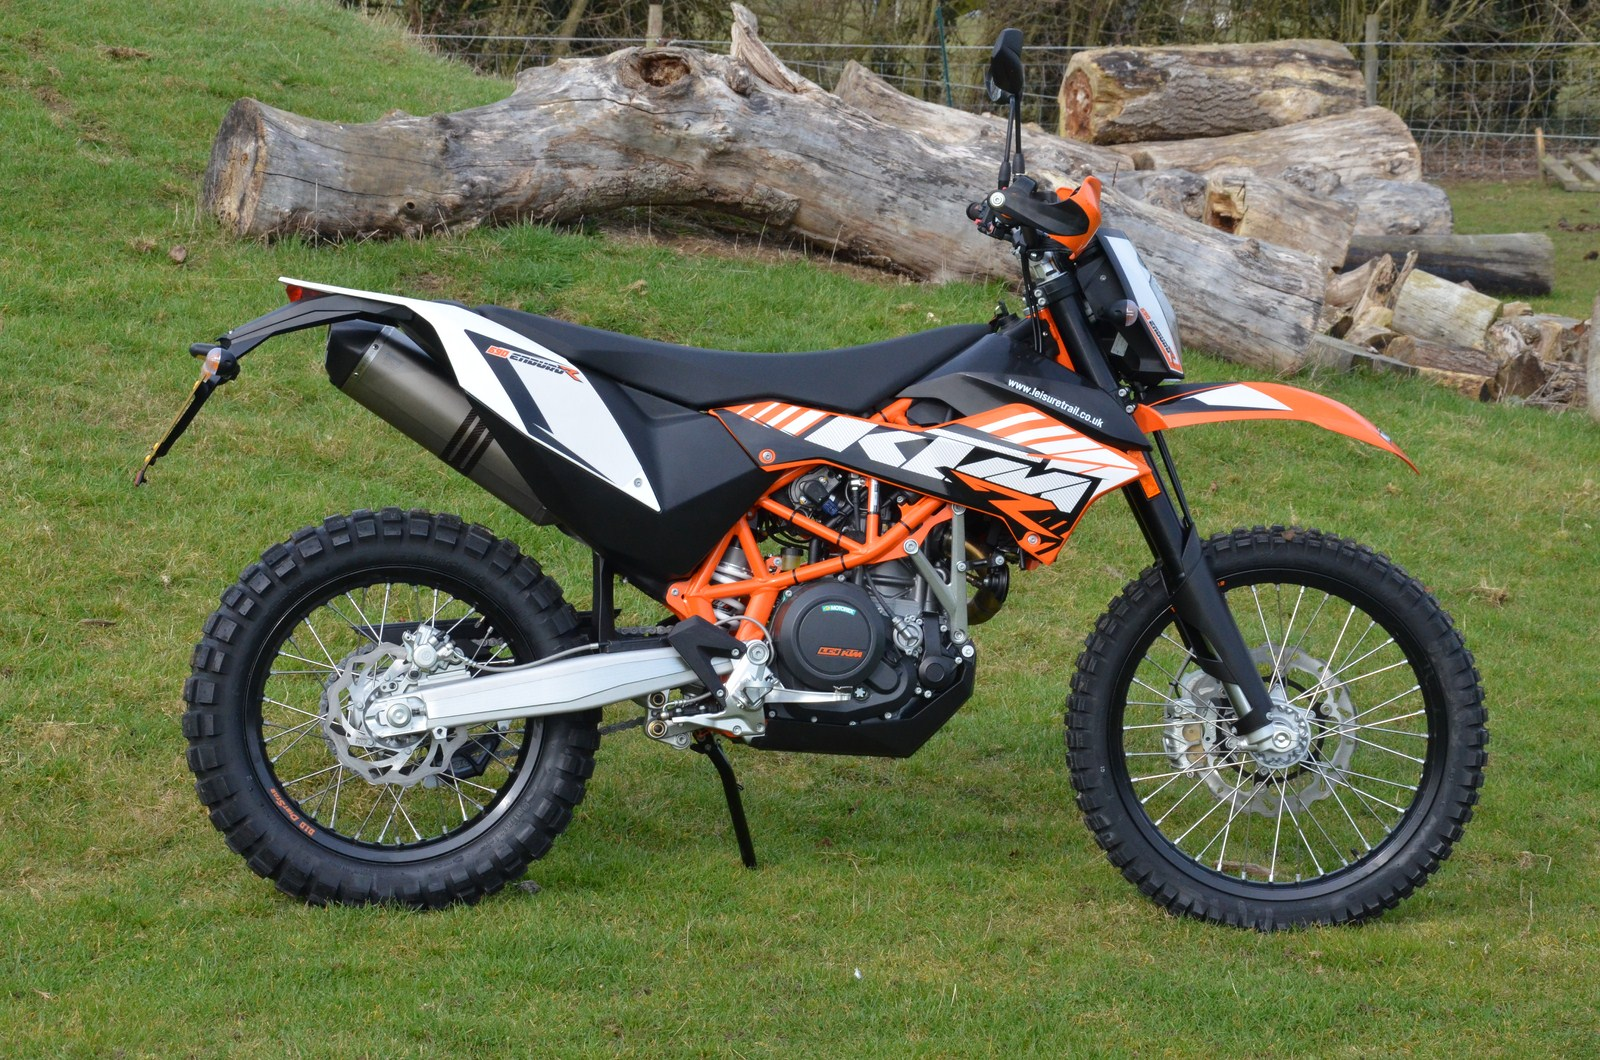 Ktm R Adventure For Sale